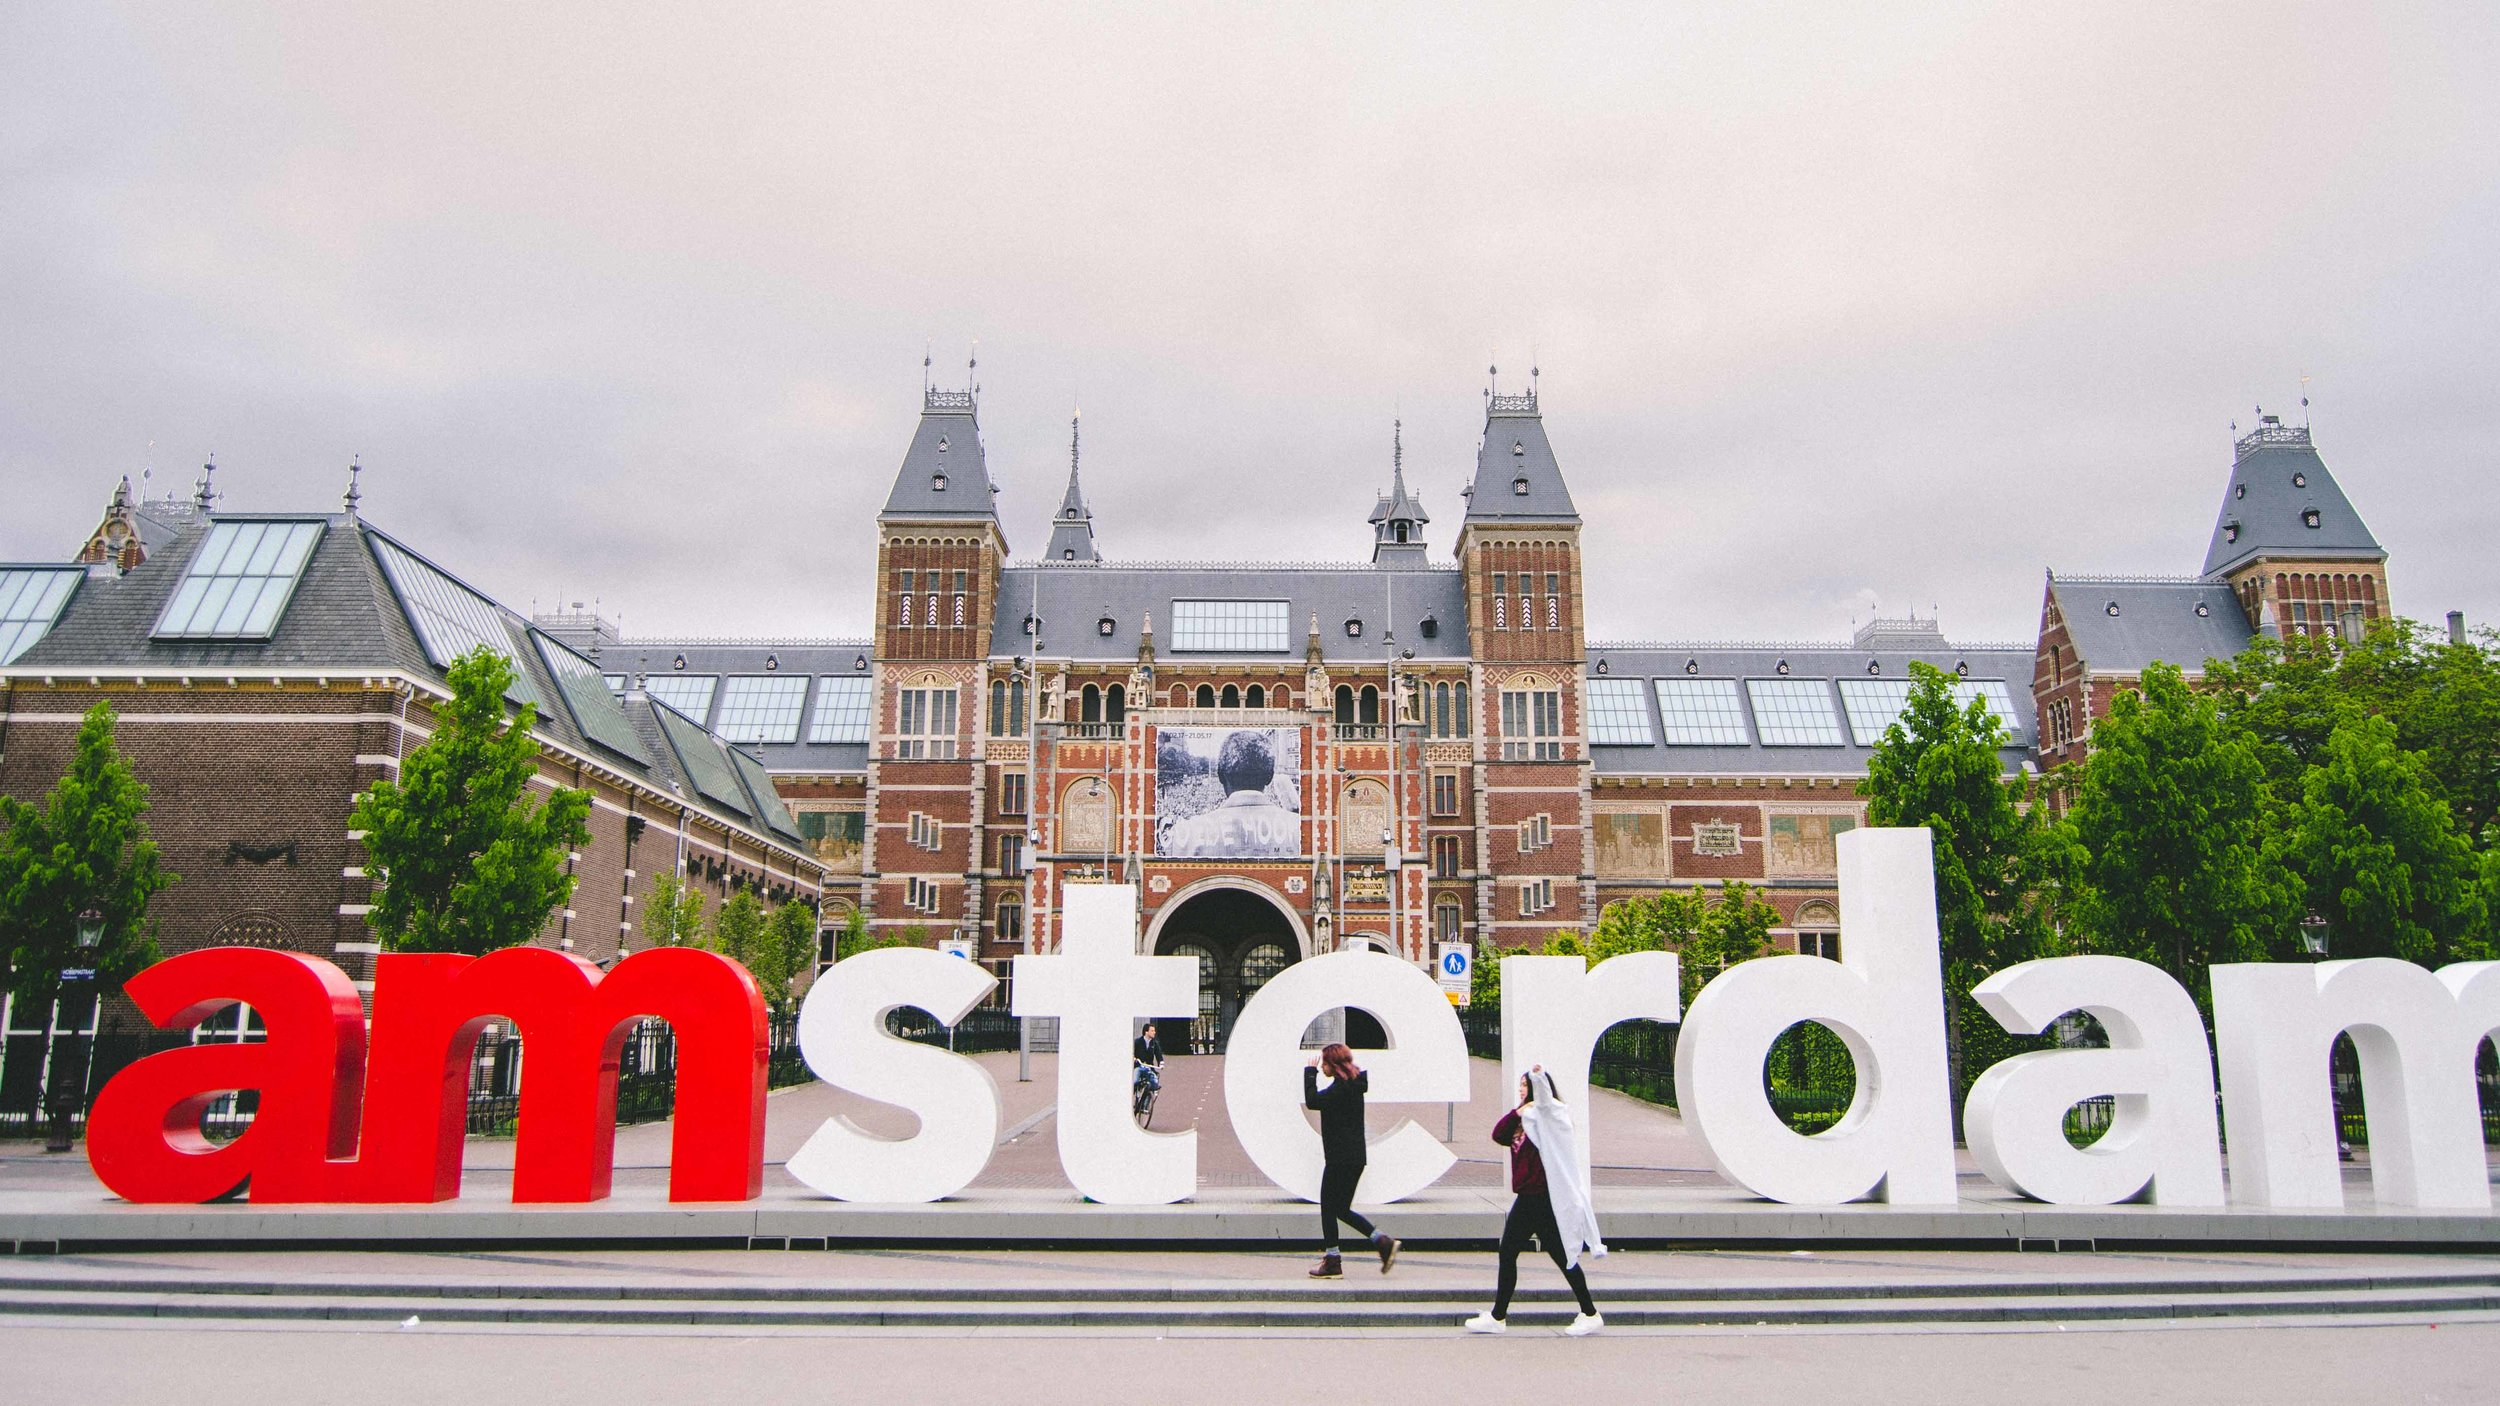 What the 'I Amsterdam' sign looks like at 6:45 in the morning. These two young women were from California and graciously took my photo before they left for the airport.